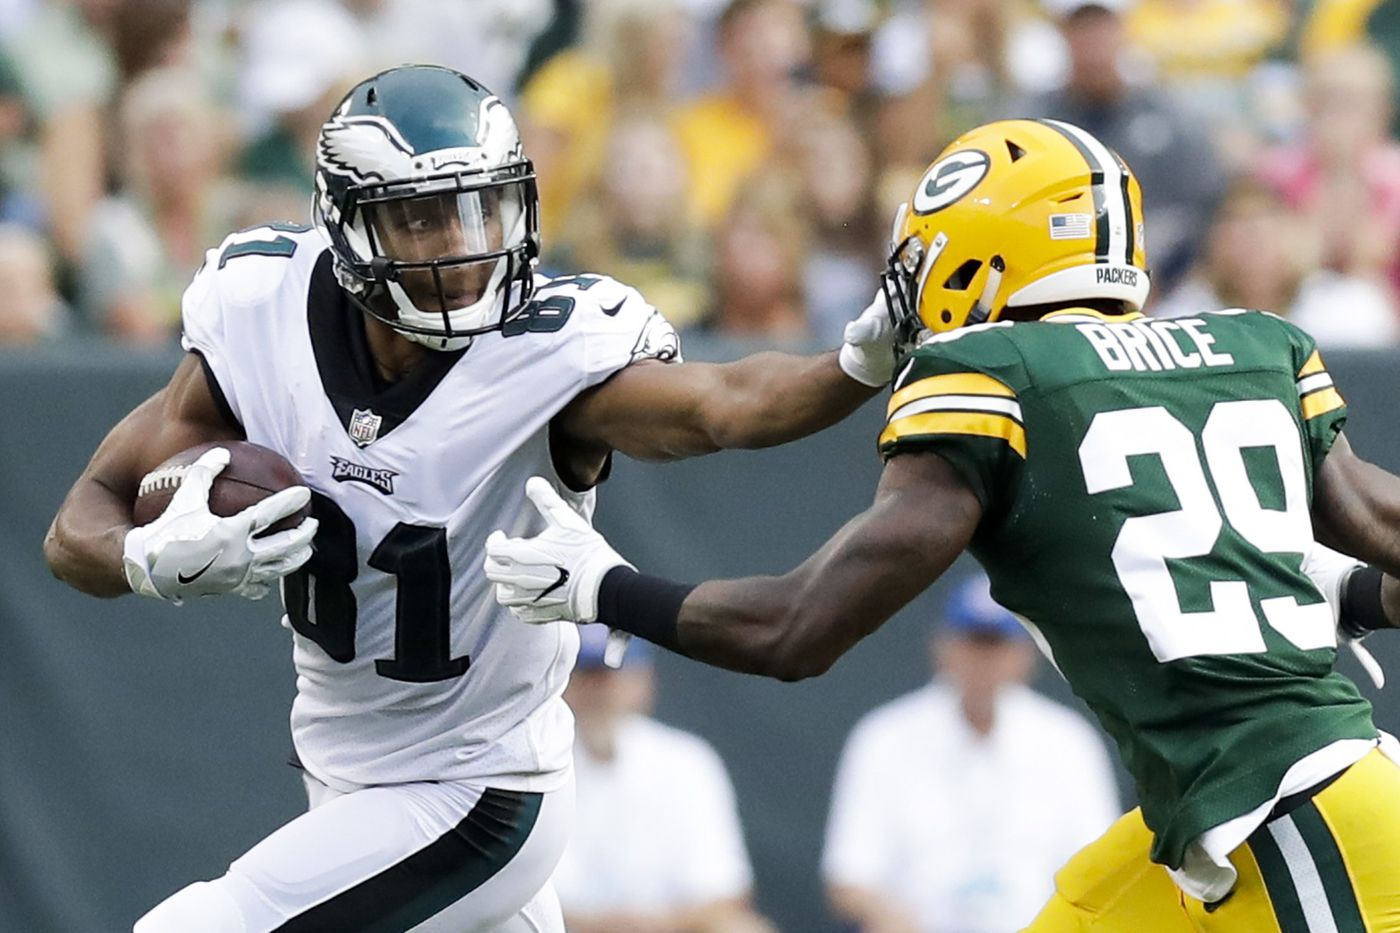 Eagles bring back WR Jordan Matthews